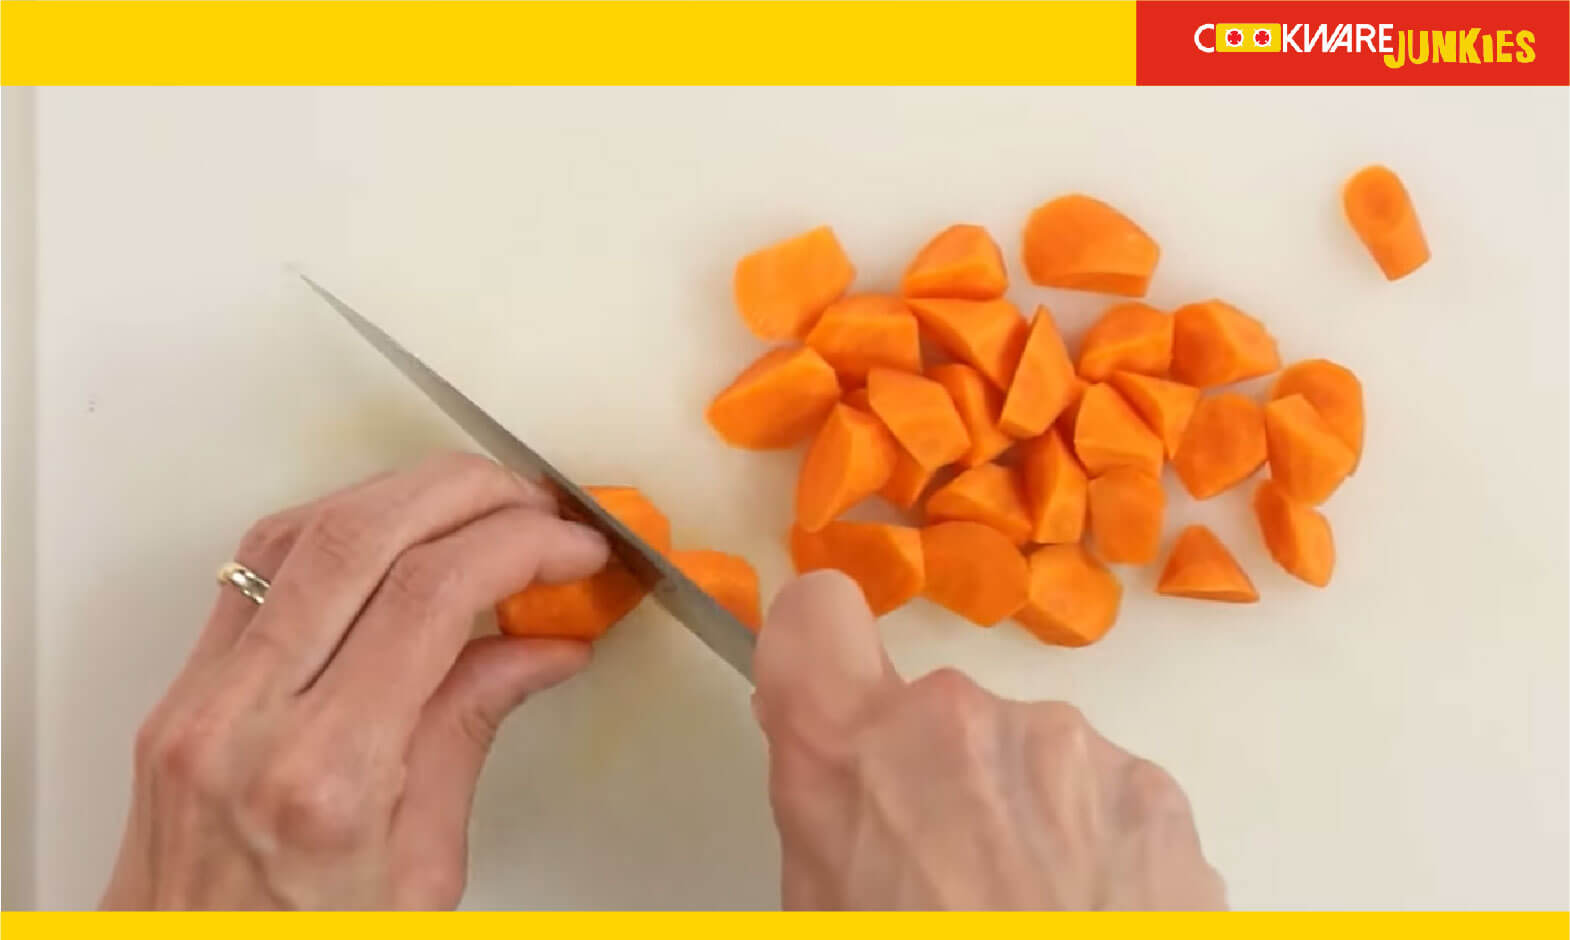 Making Roll cuts of carrot on white surface